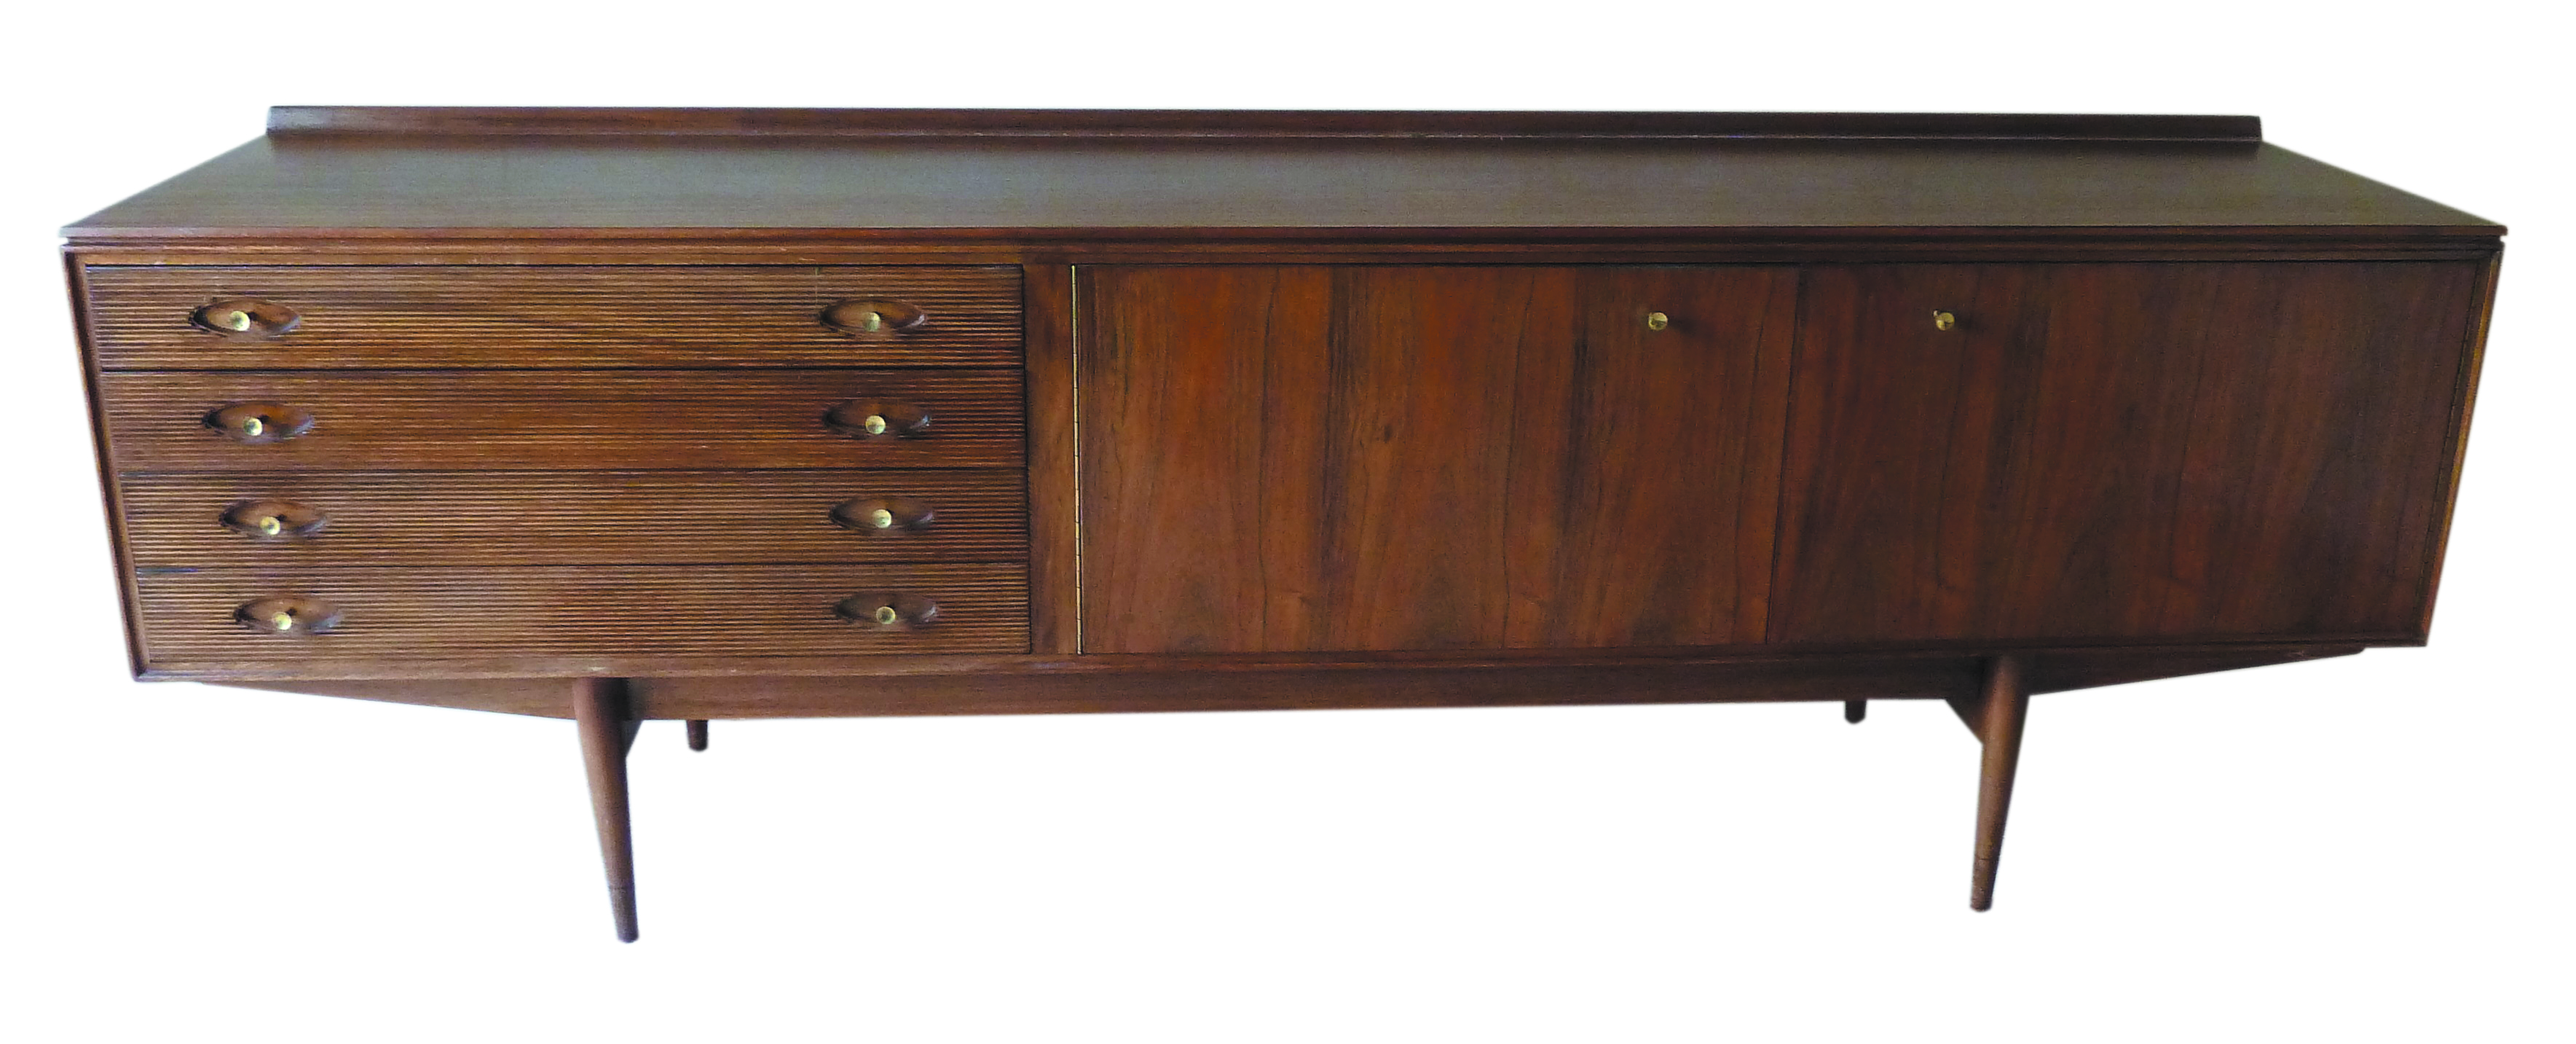 Lot 1 - Robert Heritage for Archie Shine Hamilton rectangular sideboard with four drawers and two cupboards,